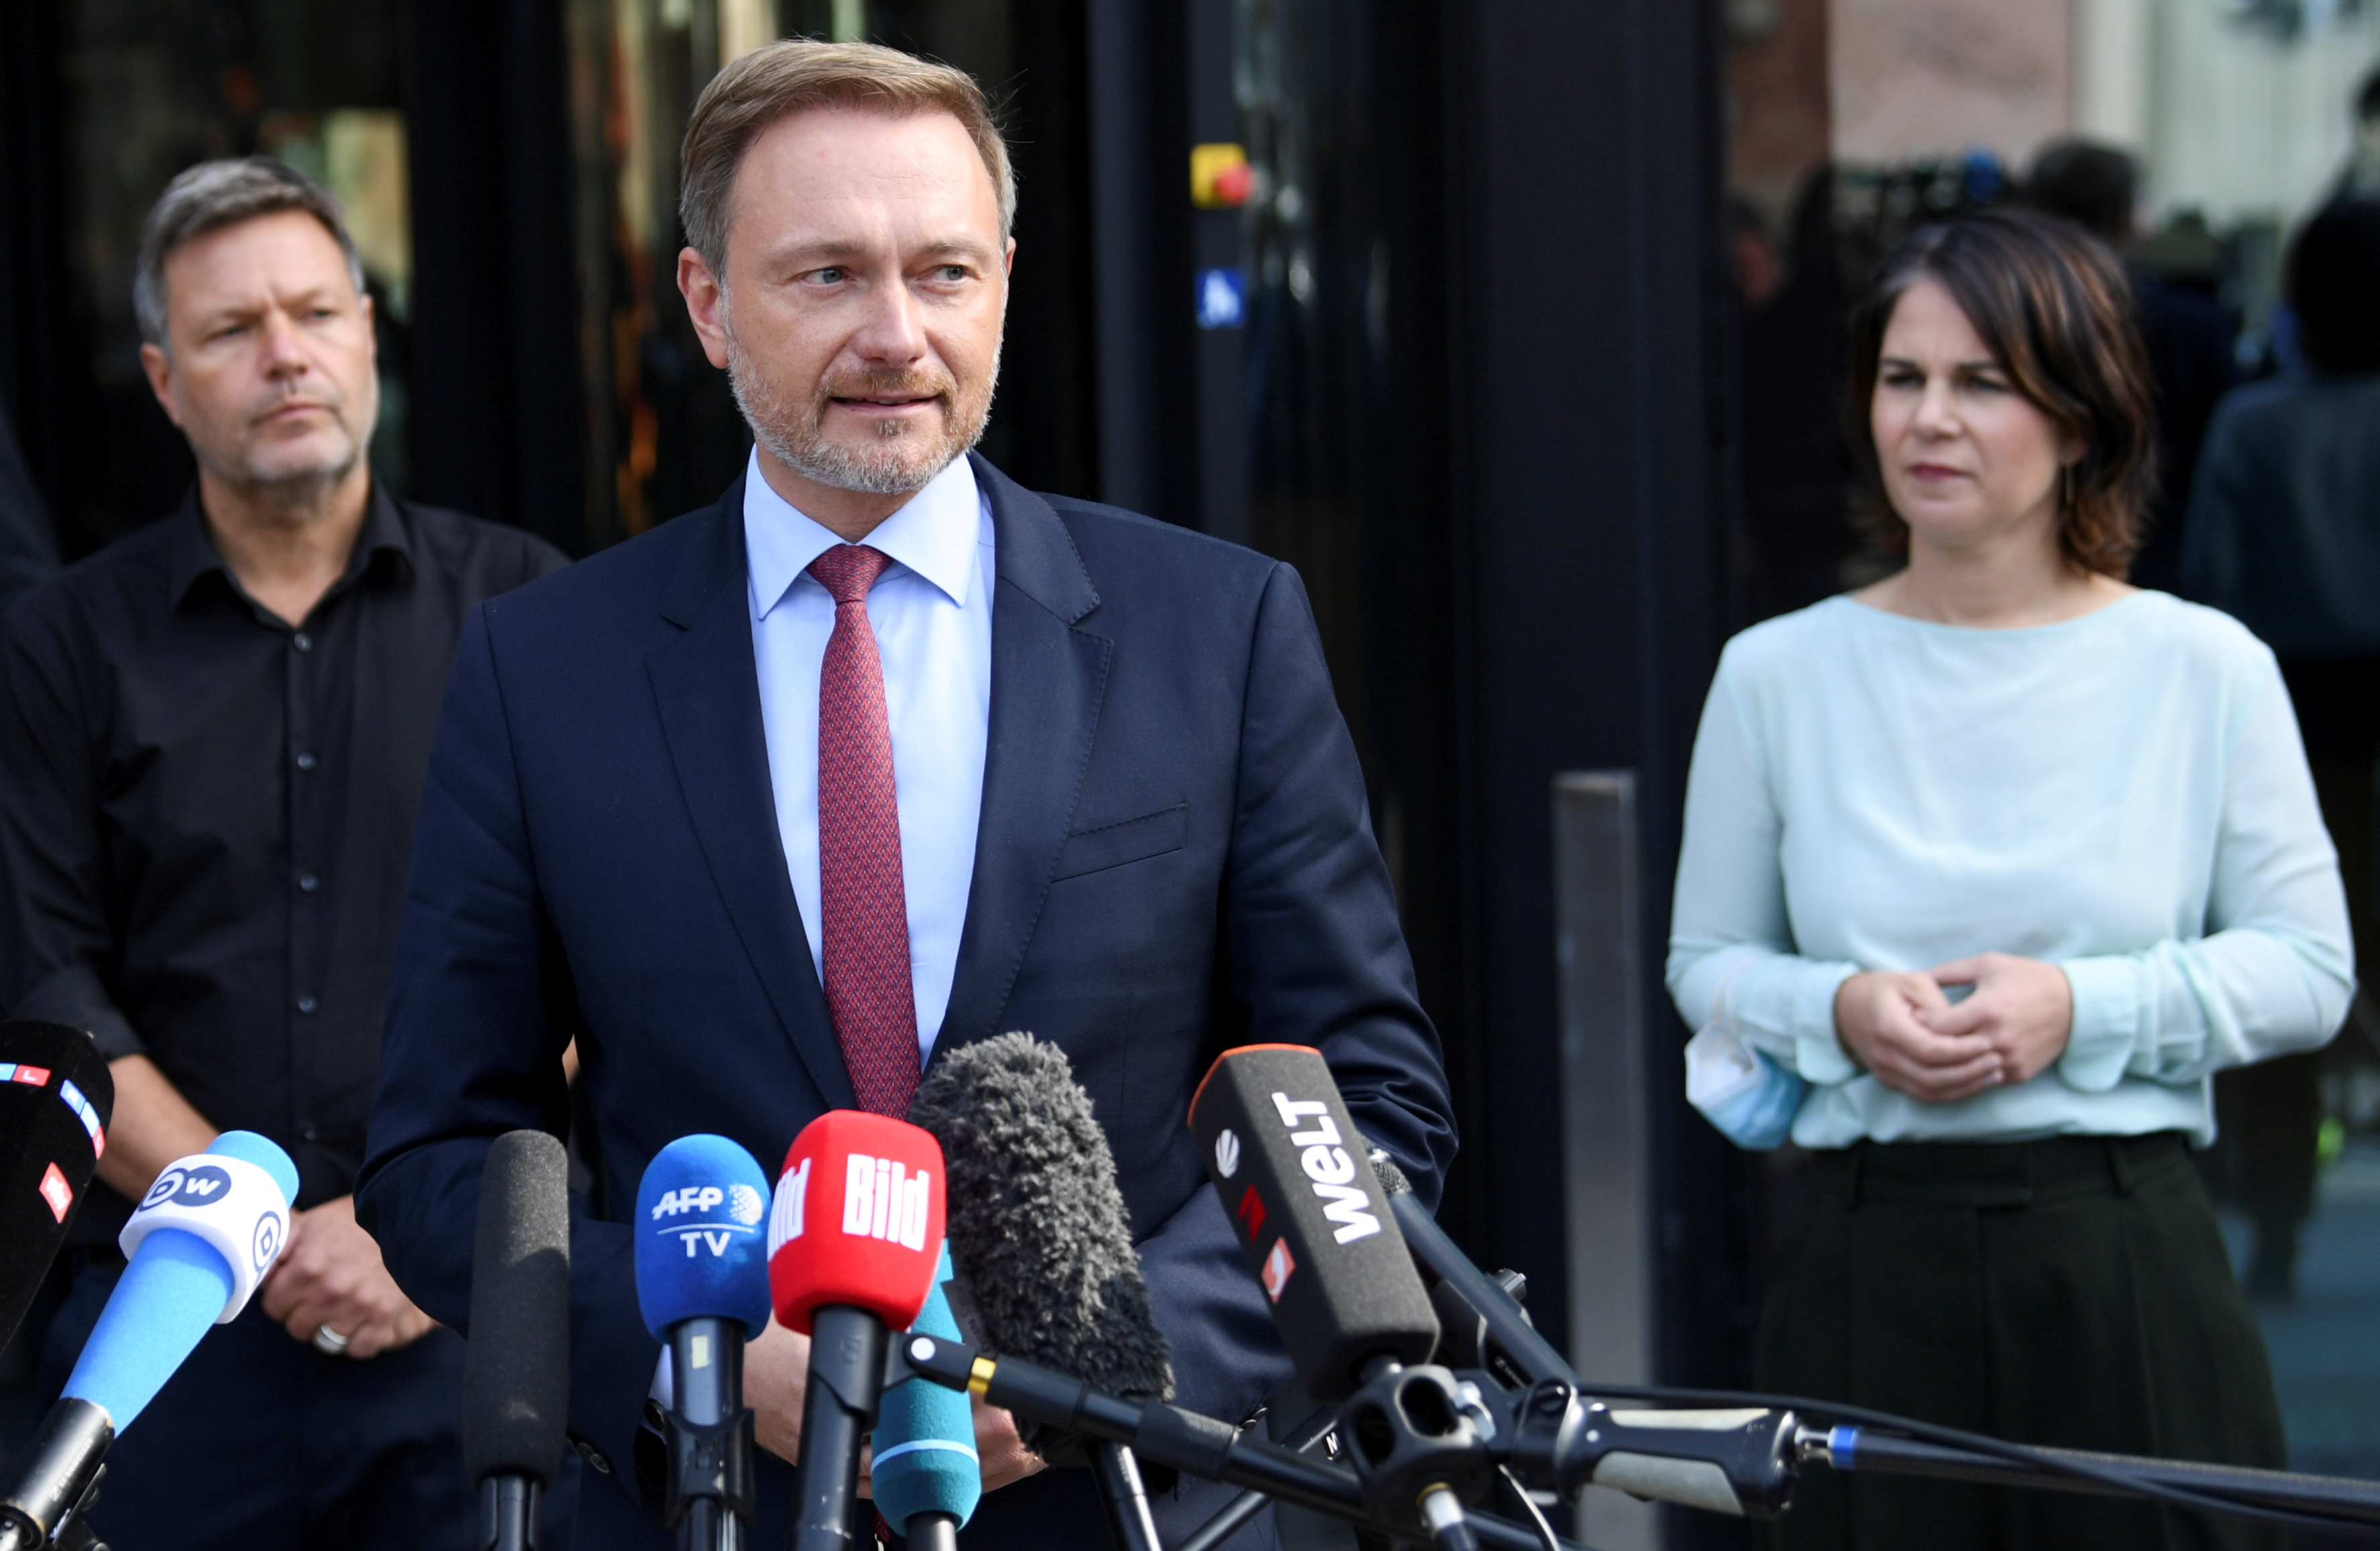 Germany's liberal Free Democratic Party (FDP) leader Christian Lindner and Greens party co-leaders Robert Habeck and Annalena Baerbock deliver a statement to the media on exploratory talks for a possible new government coalition in Berlin, Germany, October 1, 2021.   REUTERS/Annegret Hilse